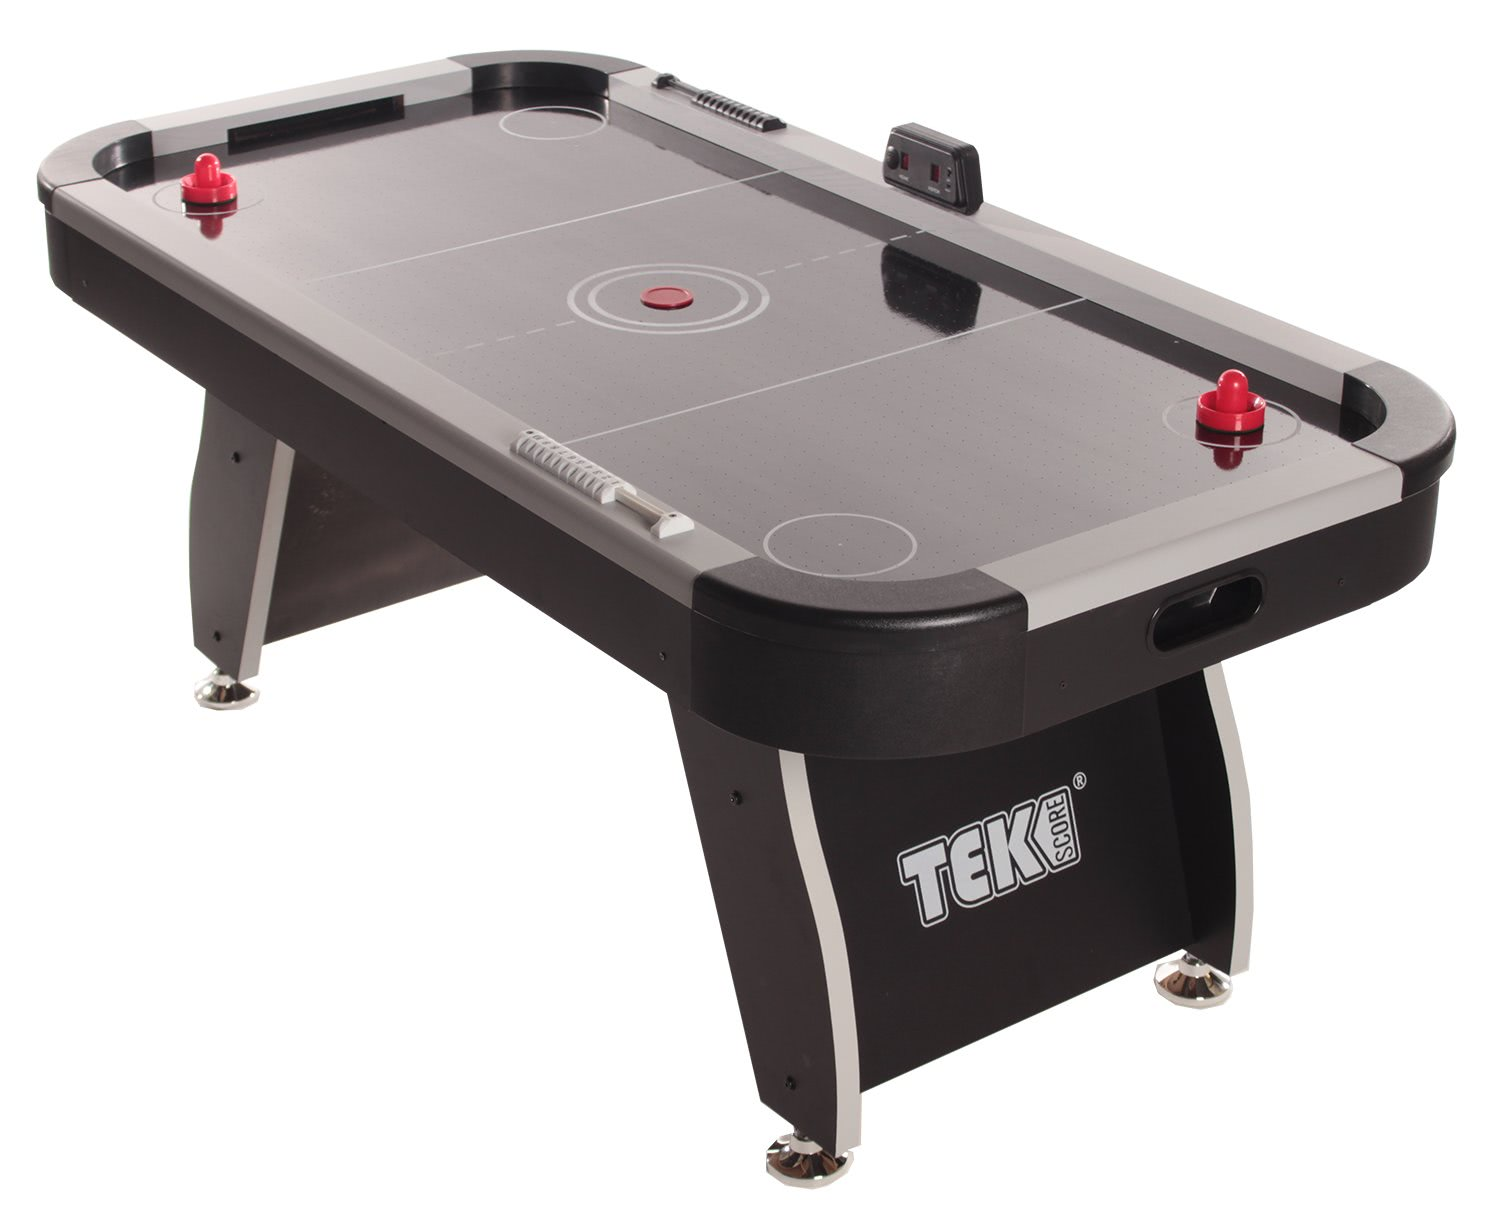 Fan motor air hockey table Motorized table